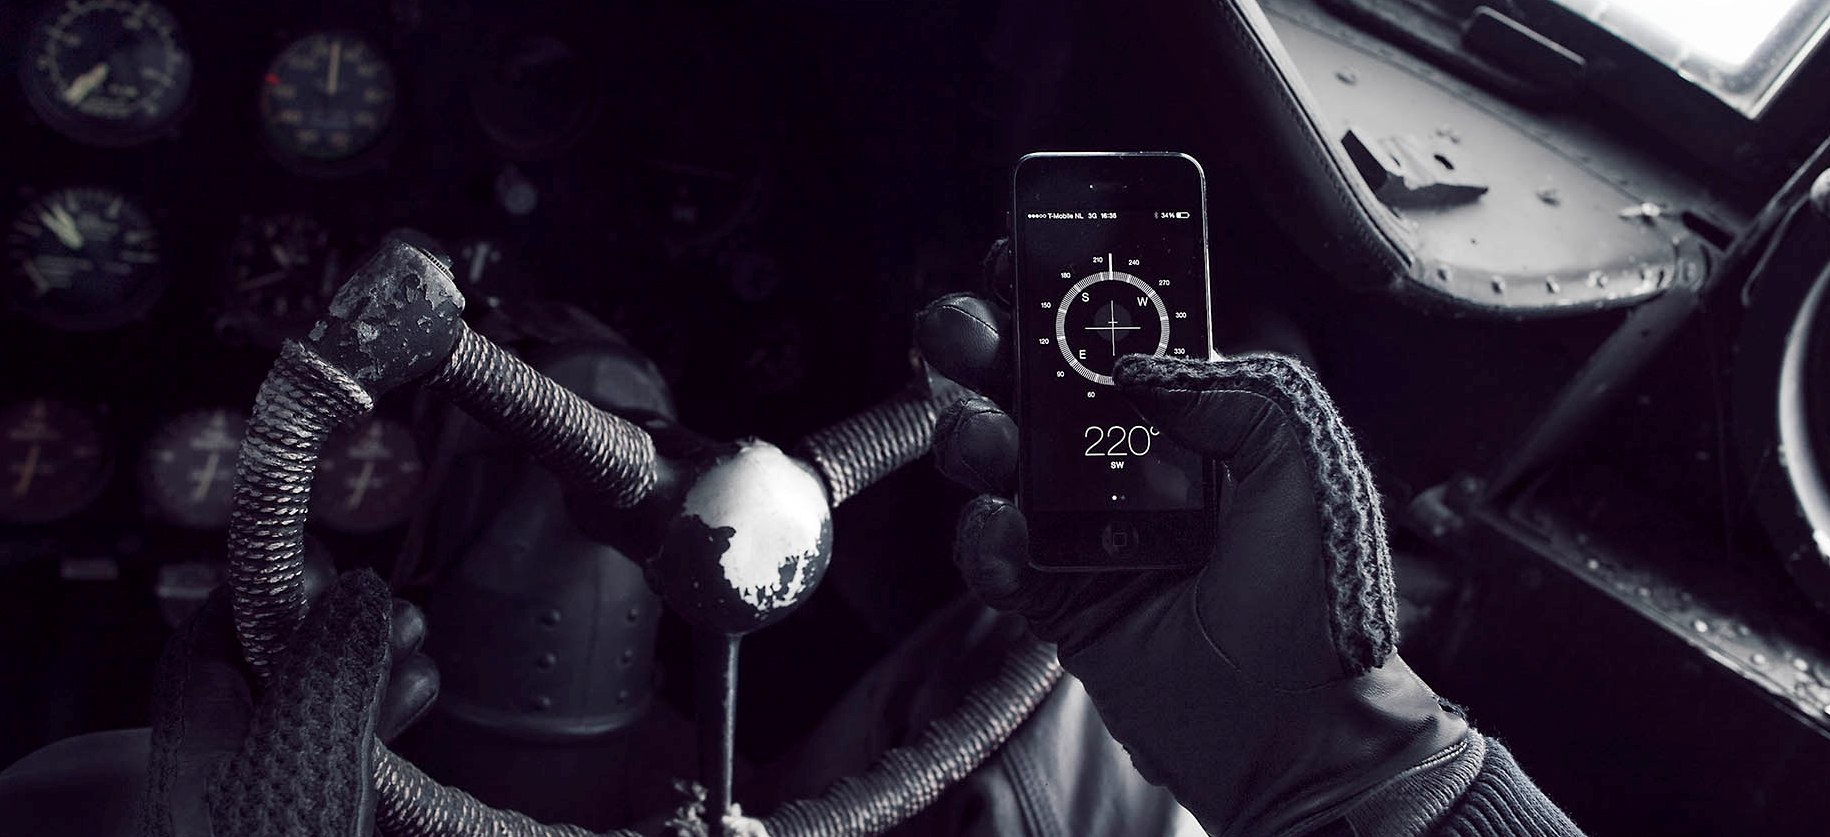 Mujjo's mitts: This company's taking touchscreen gloves to the next level